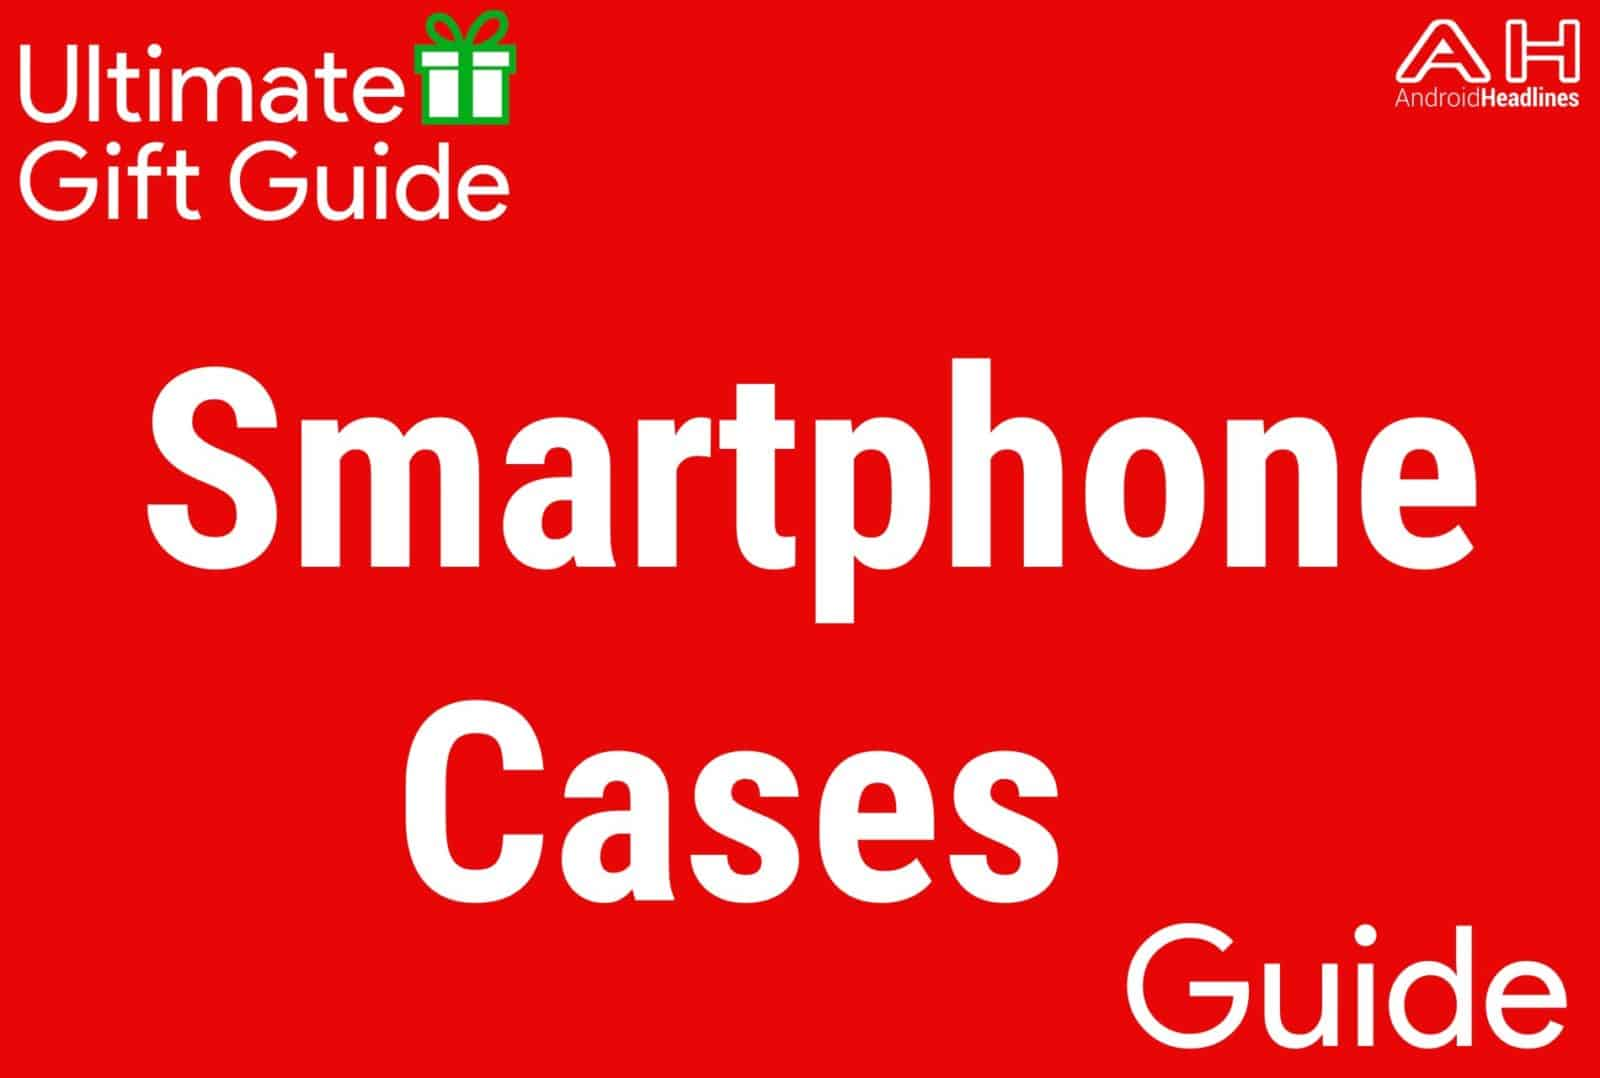 Smartphone Cases - Gift Guide 2015